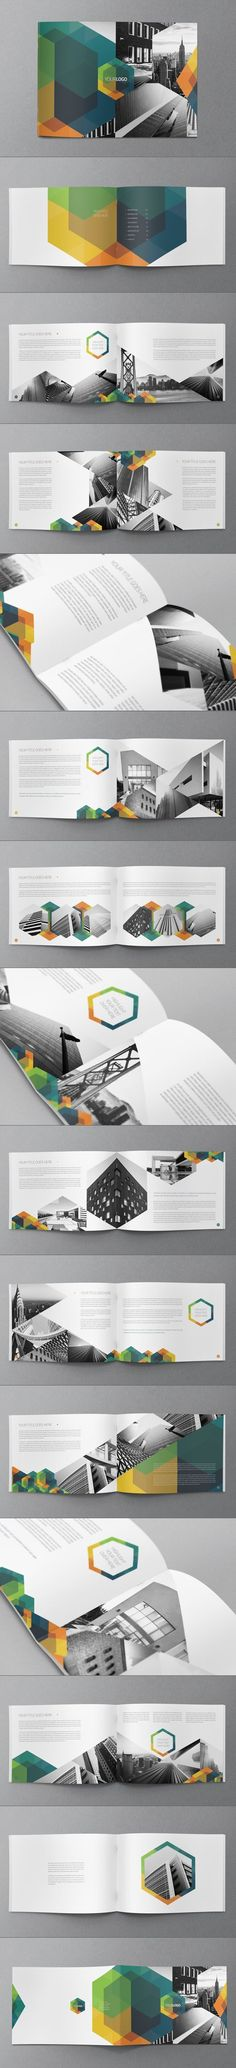 Creative Design, Brochure, Graphic, Layout, and Hexo image ideas & inspiration on Designspiration Layout Design, Graphisches Design, Buch Design, Graphic Design Layouts, Print Layout, Swiss Design, Print Design, Cv Inspiration, Illustration Inspiration